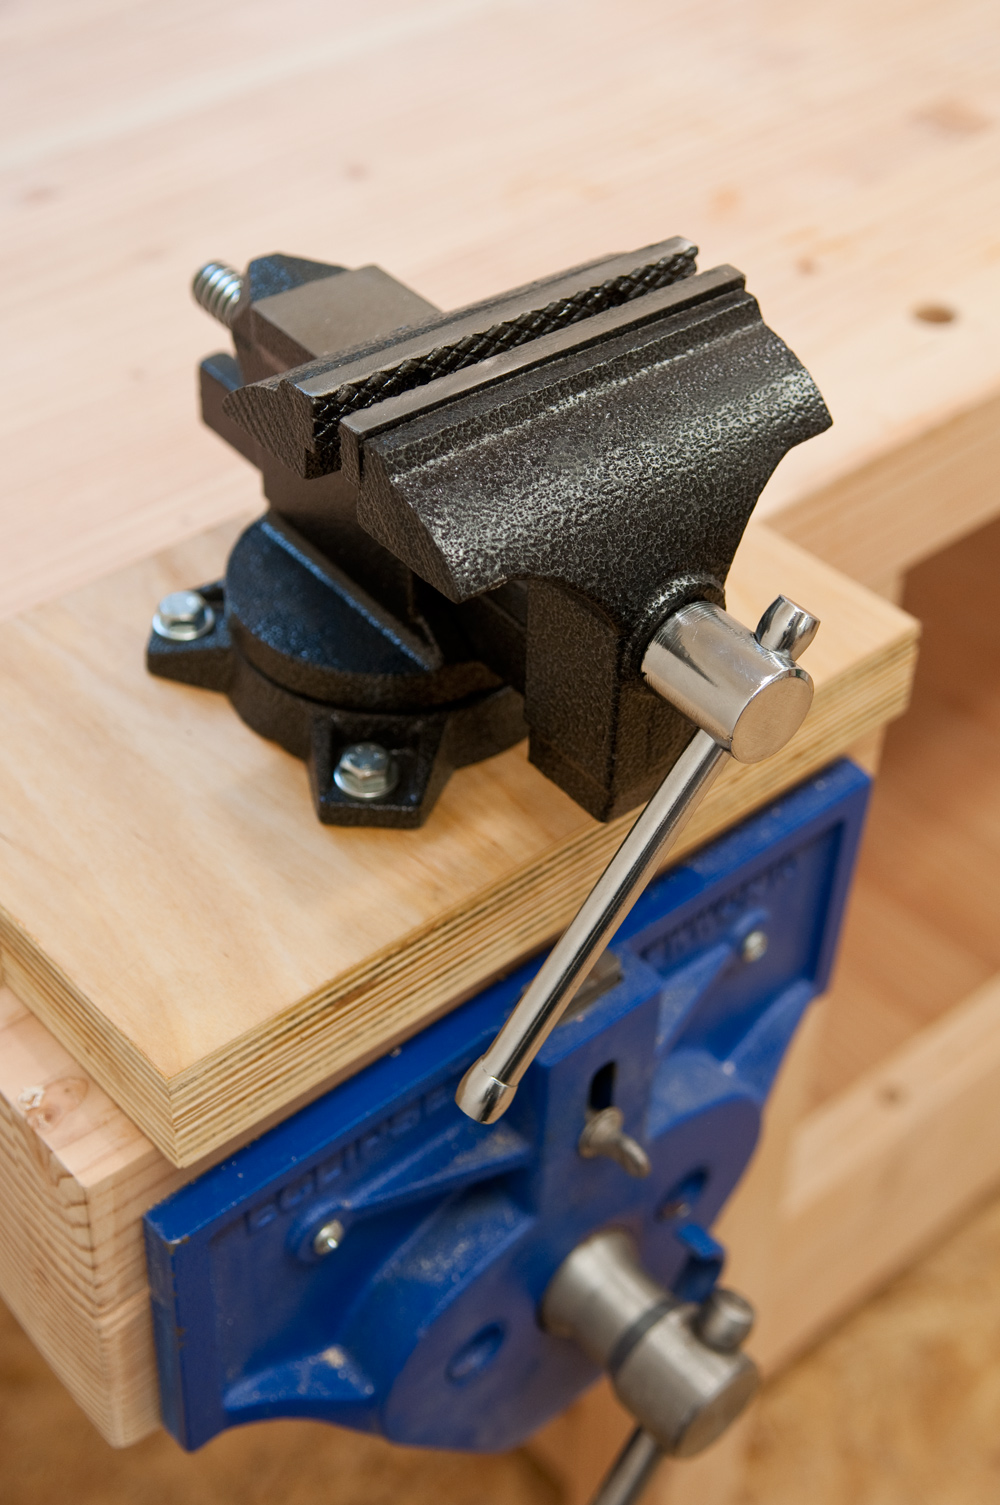 How To Install A Pedestal Sink Orc Week 3 Our Home: How To Install And Mount A Vise Without Drilling Holes In